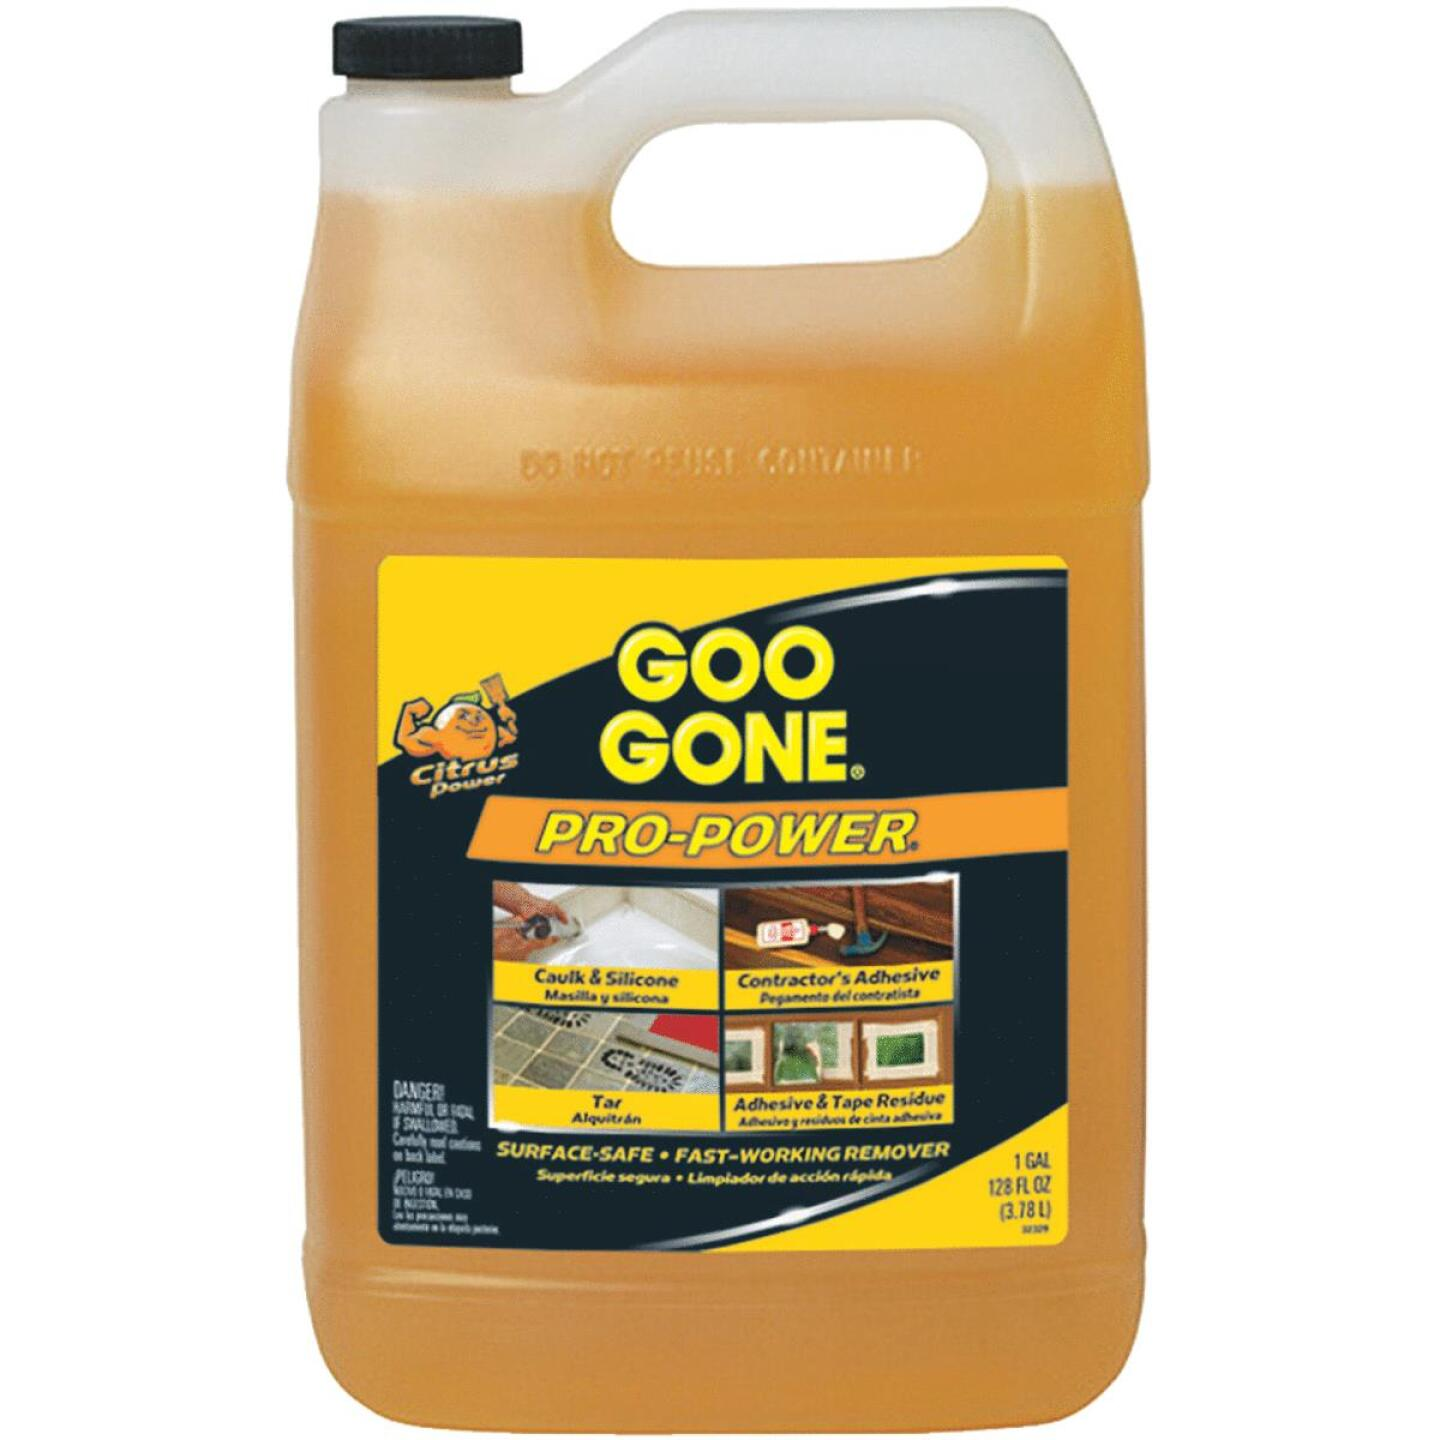 Goo Gone 1 Gal. Pro-Power Adhesive Remover Image 100